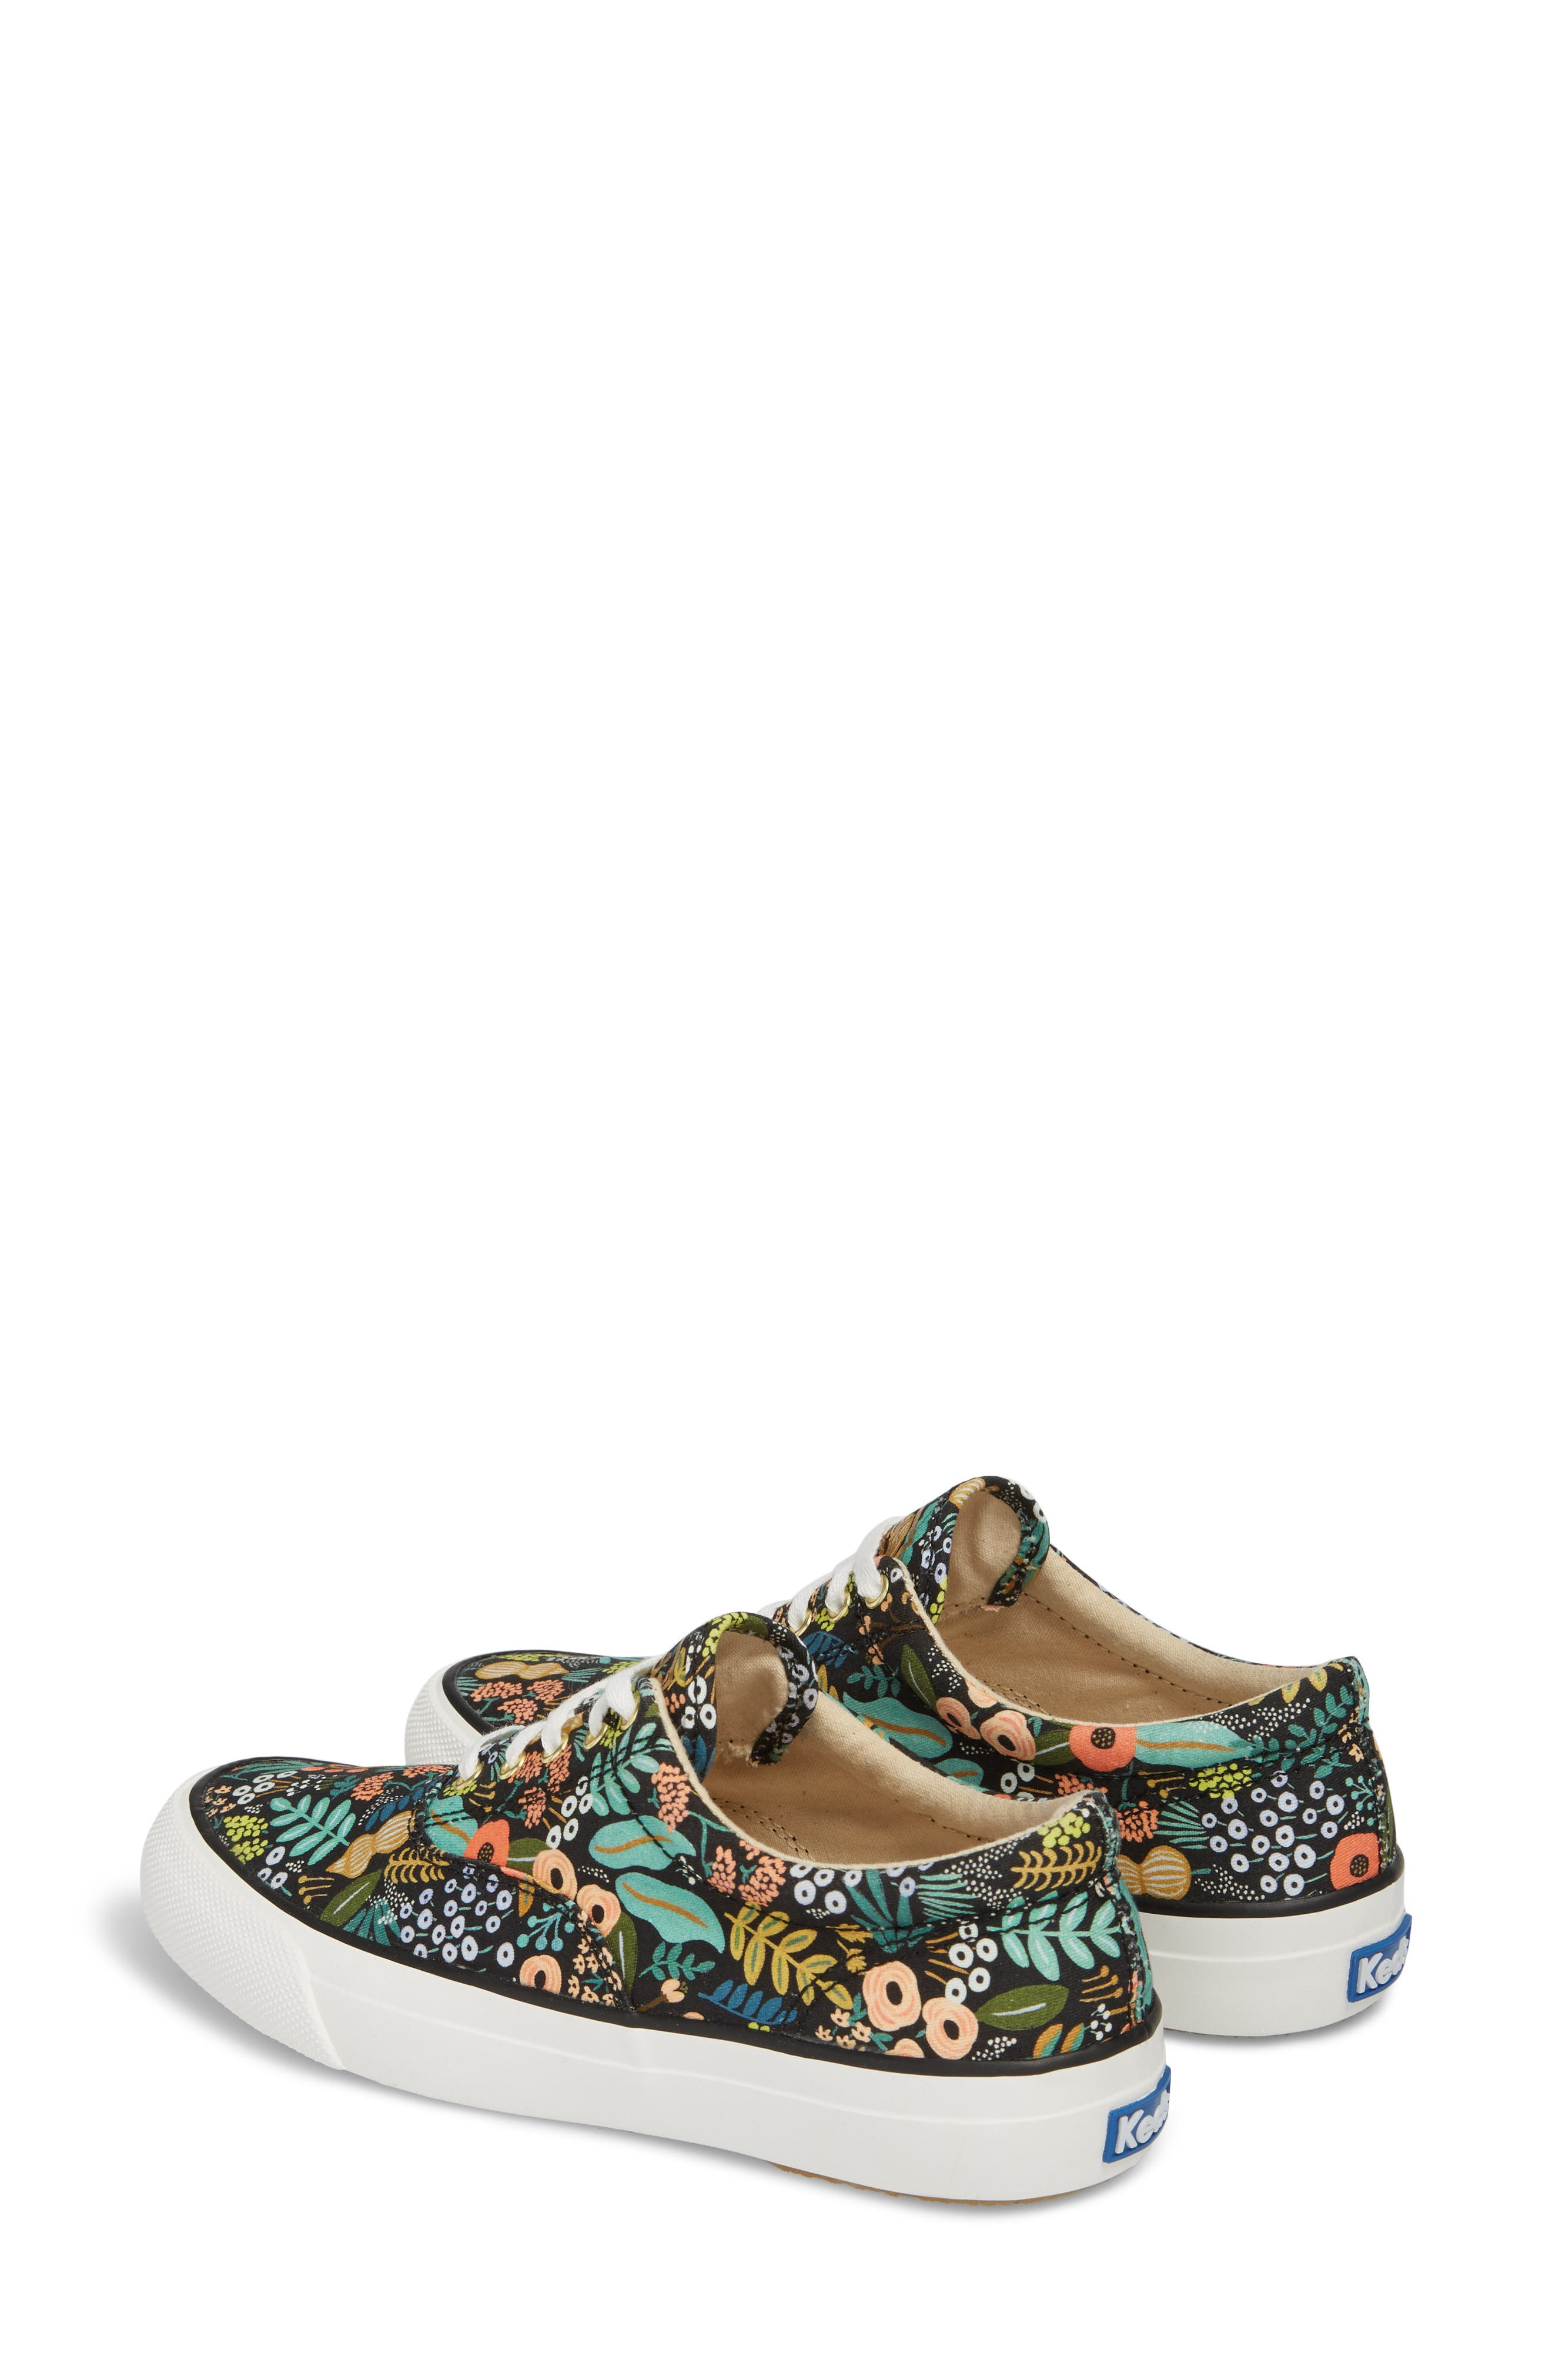 x Rifle Paper Co. Anchor Lively Floral Slip-On Sneaker,                             Alternate thumbnail 3, color,                             BLACK